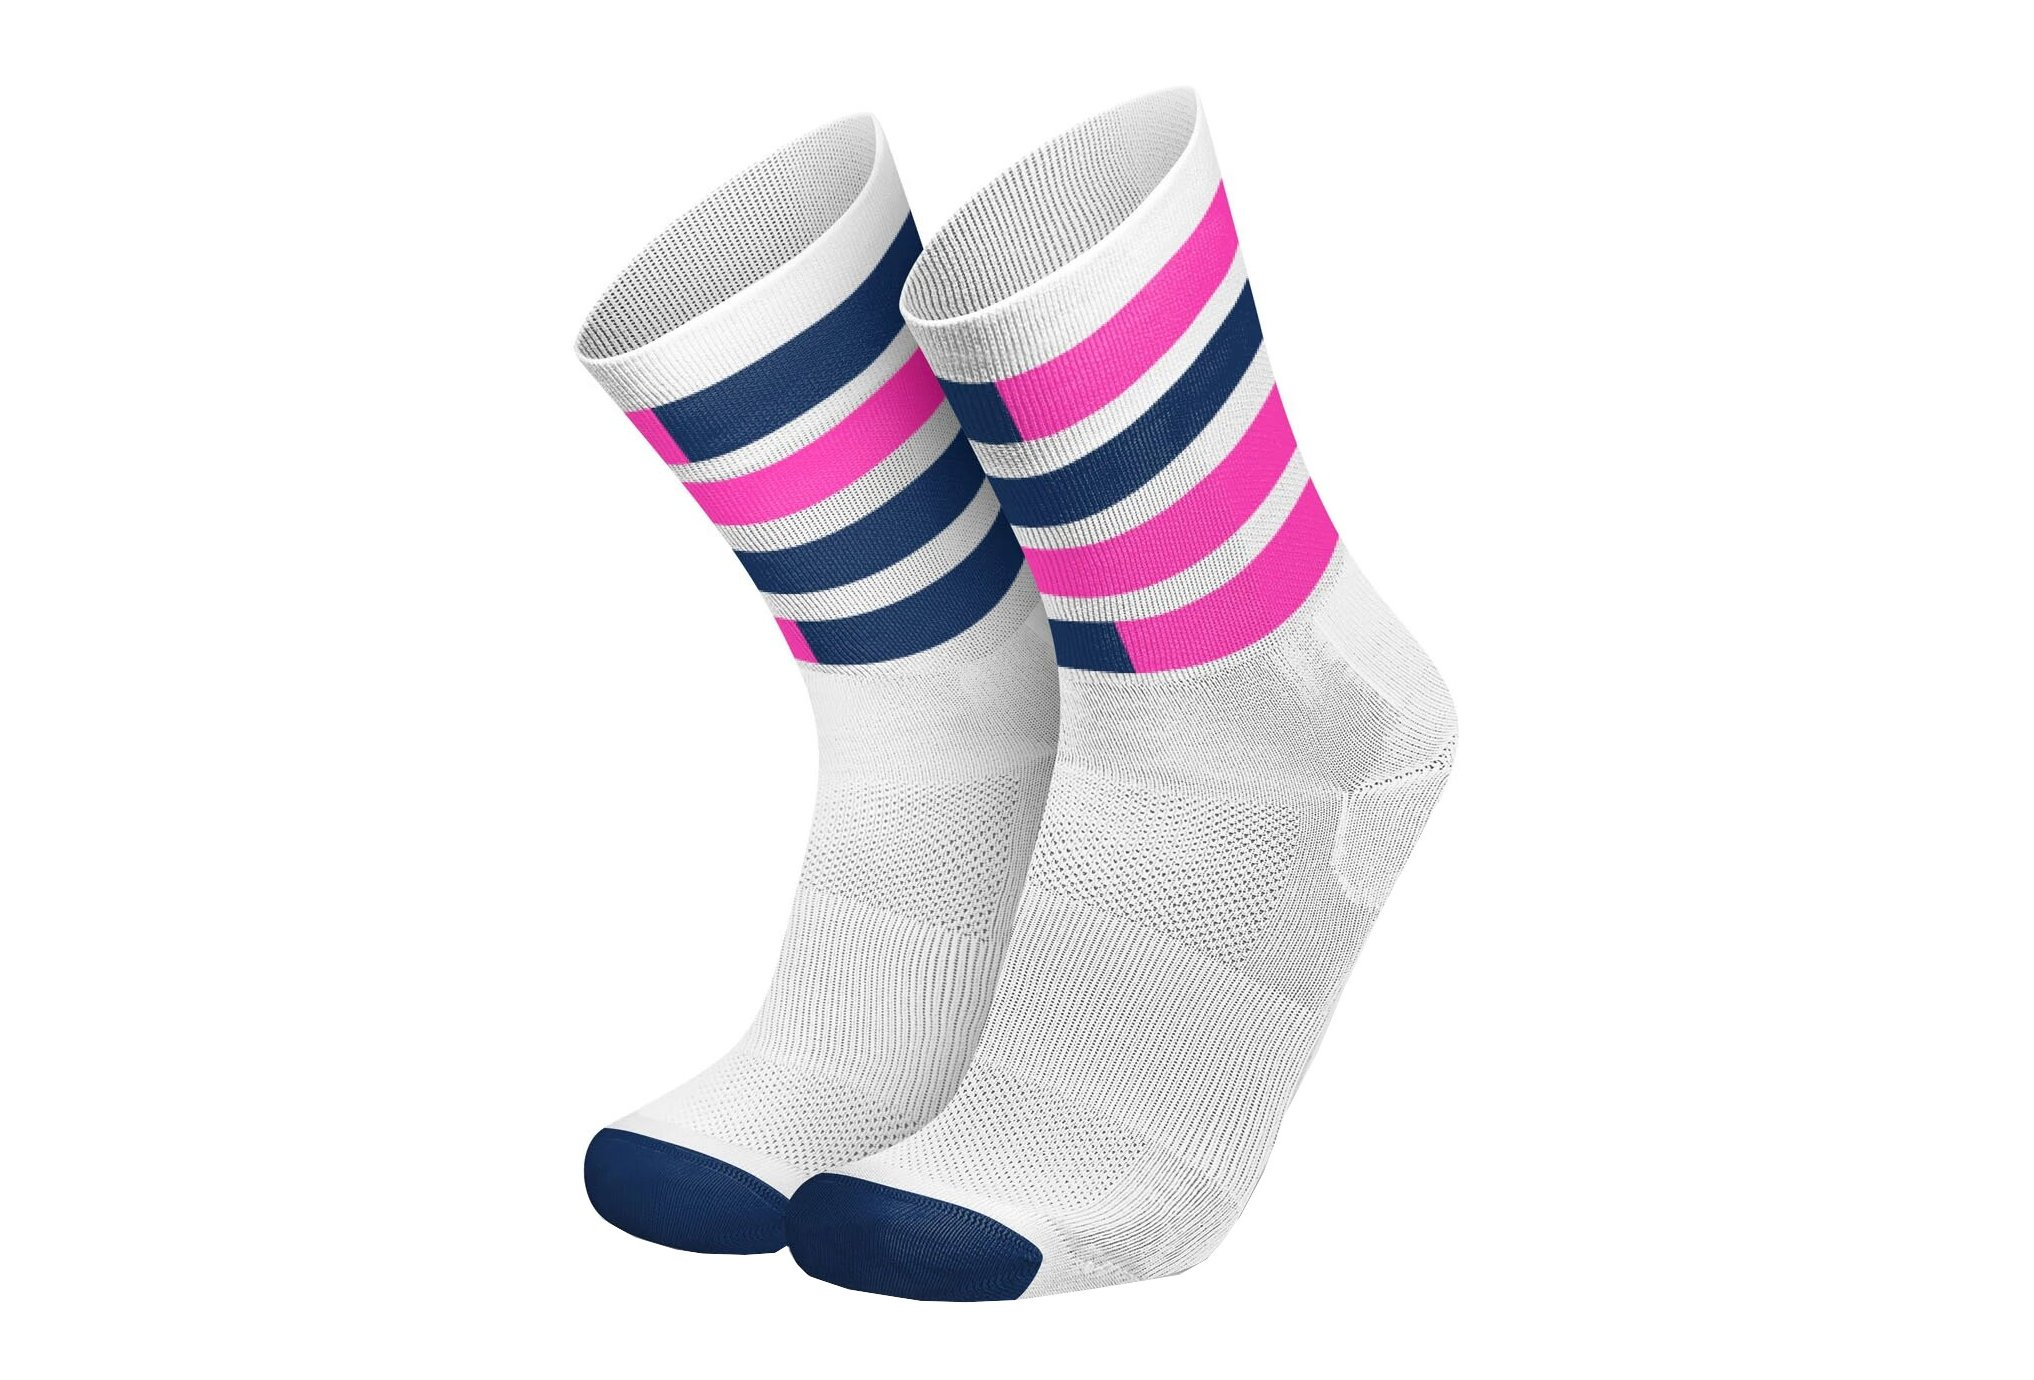 INCYLENCE Spins Chaussettes